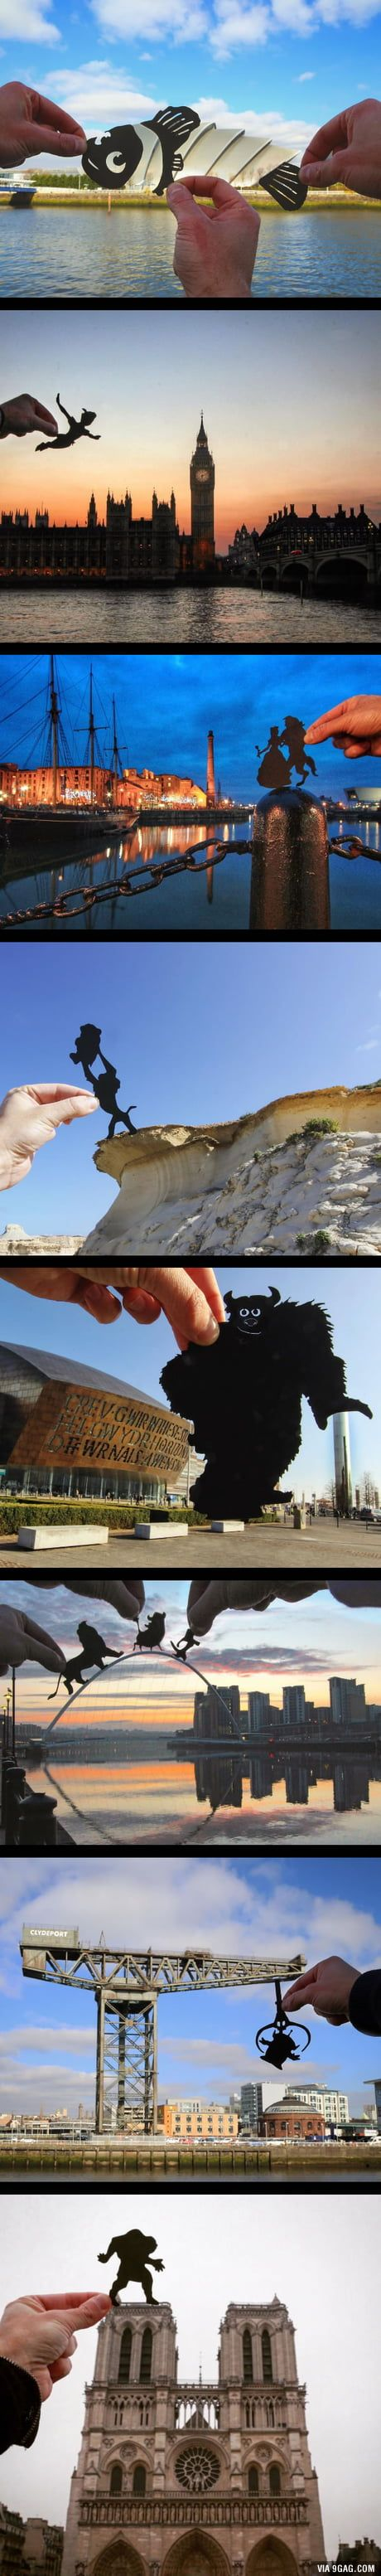 Artist Transforms Famous Landmarks Into Disney Scenes Using Only Paper (By Rich McCor) - Gaming